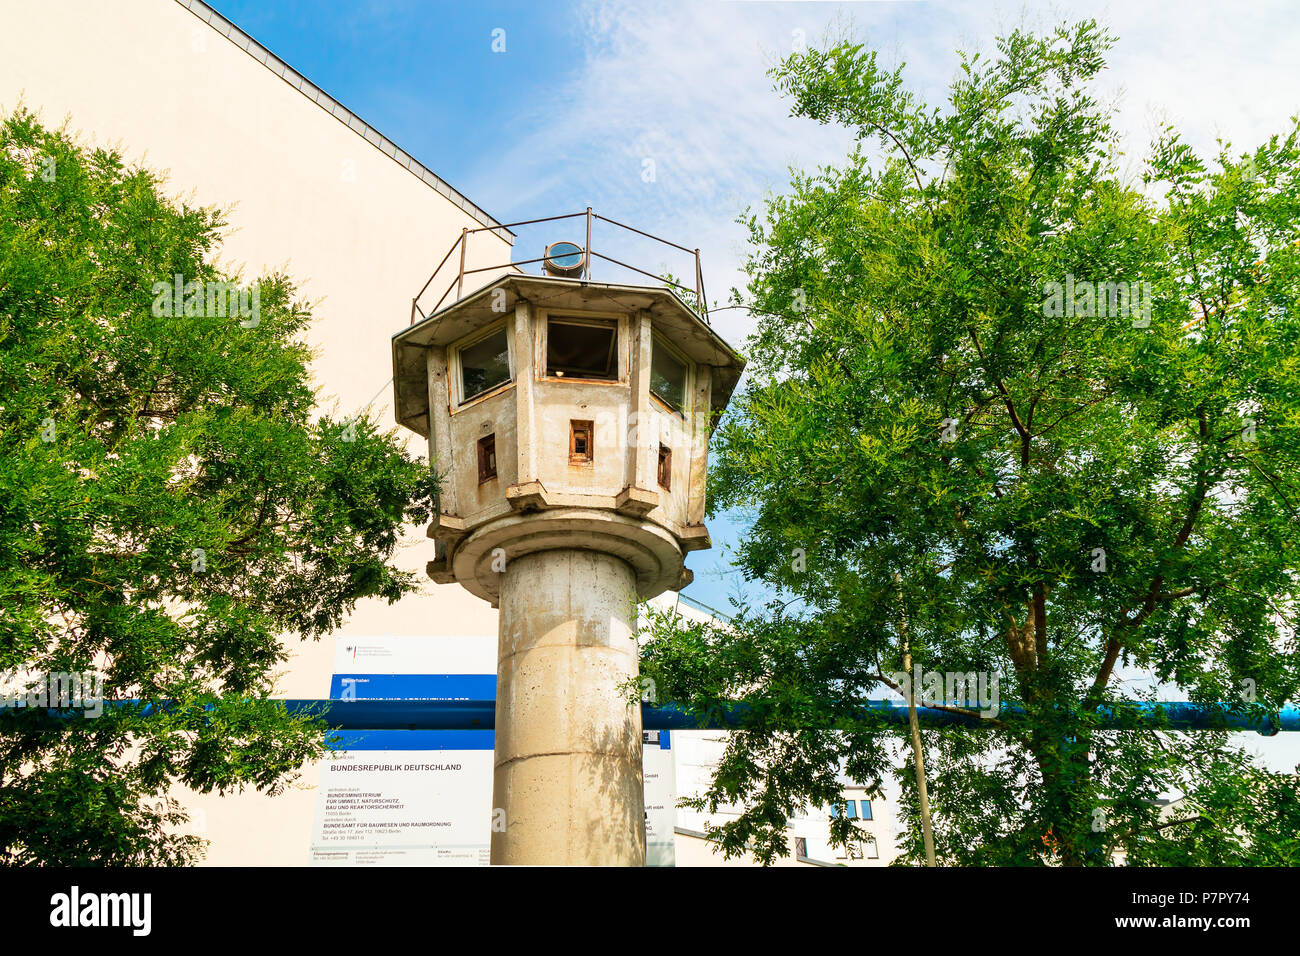 One of the last relics of the DDR - the type BT 6 watchtower on Potsdamer Platz. - Stock Image